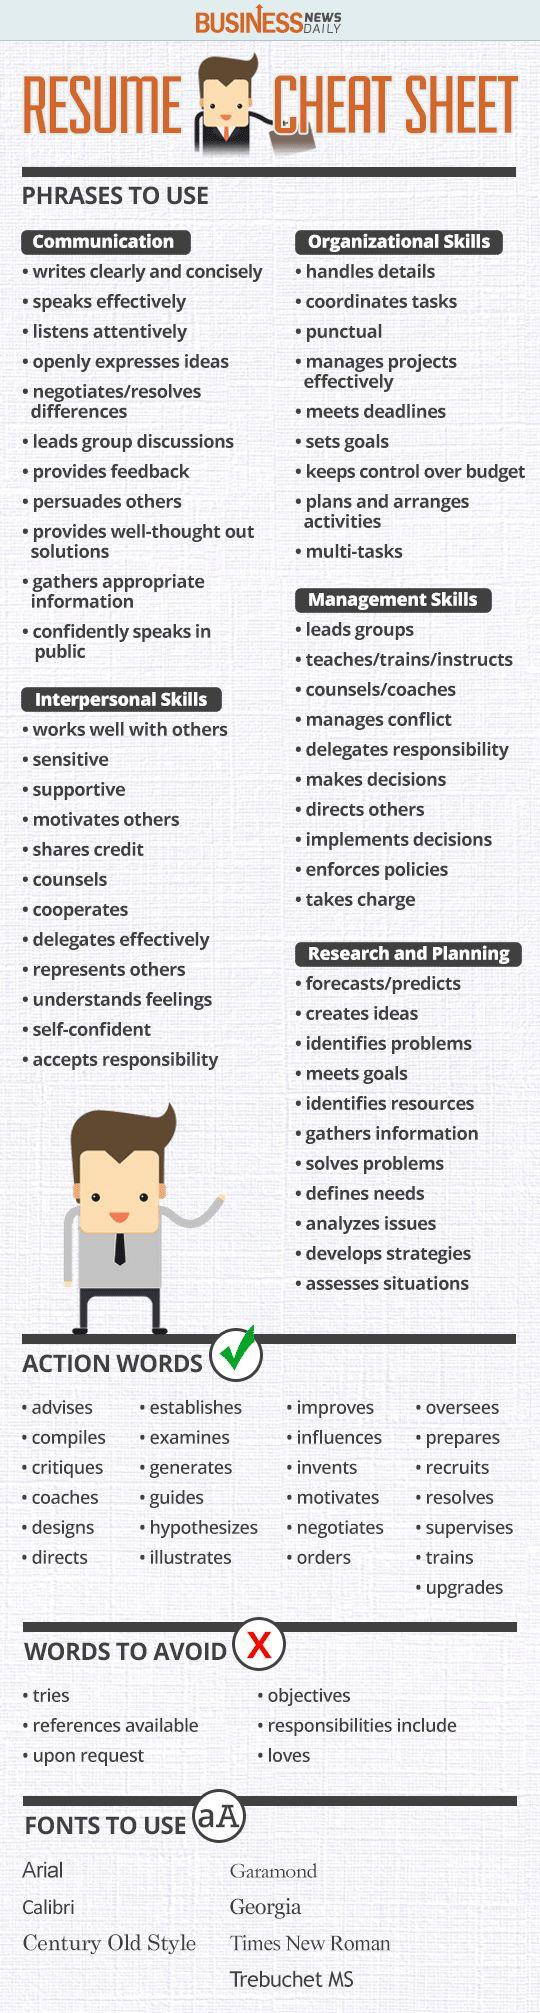 Resume cheat sheet coolguides Resume skills, Diy